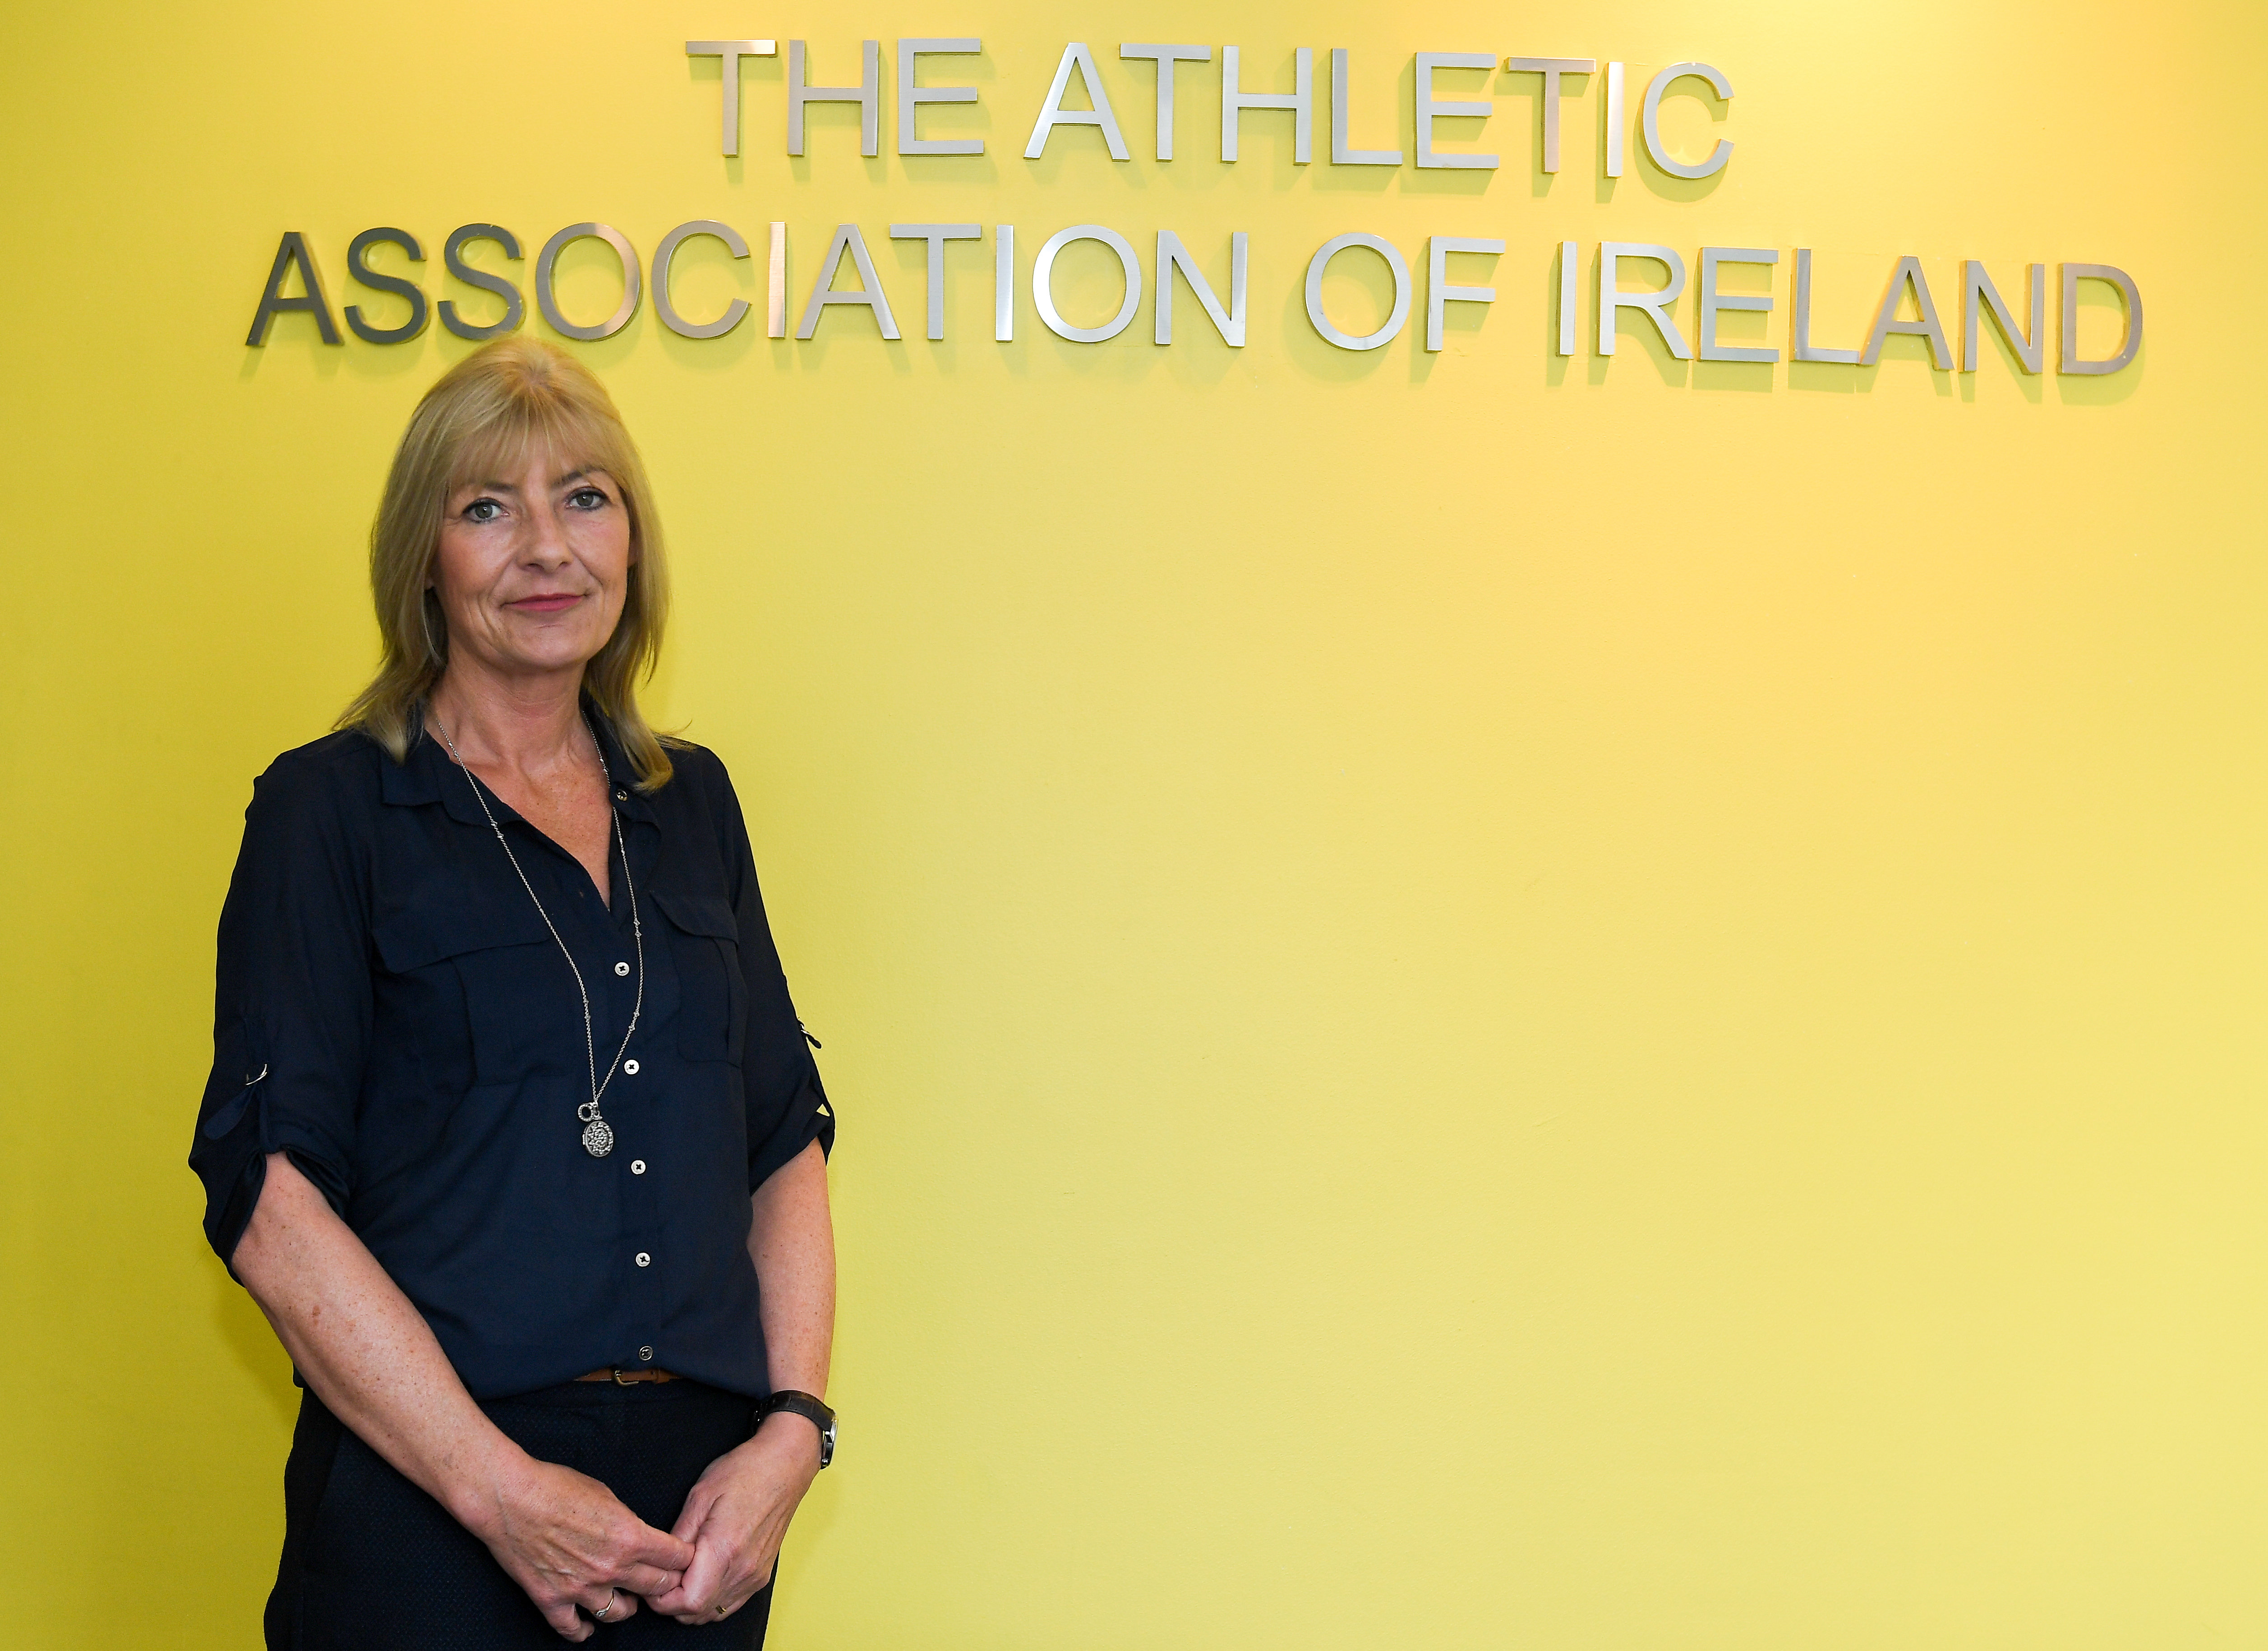 Departure of Moira Aston, Director of Operations from Athletics Ireland